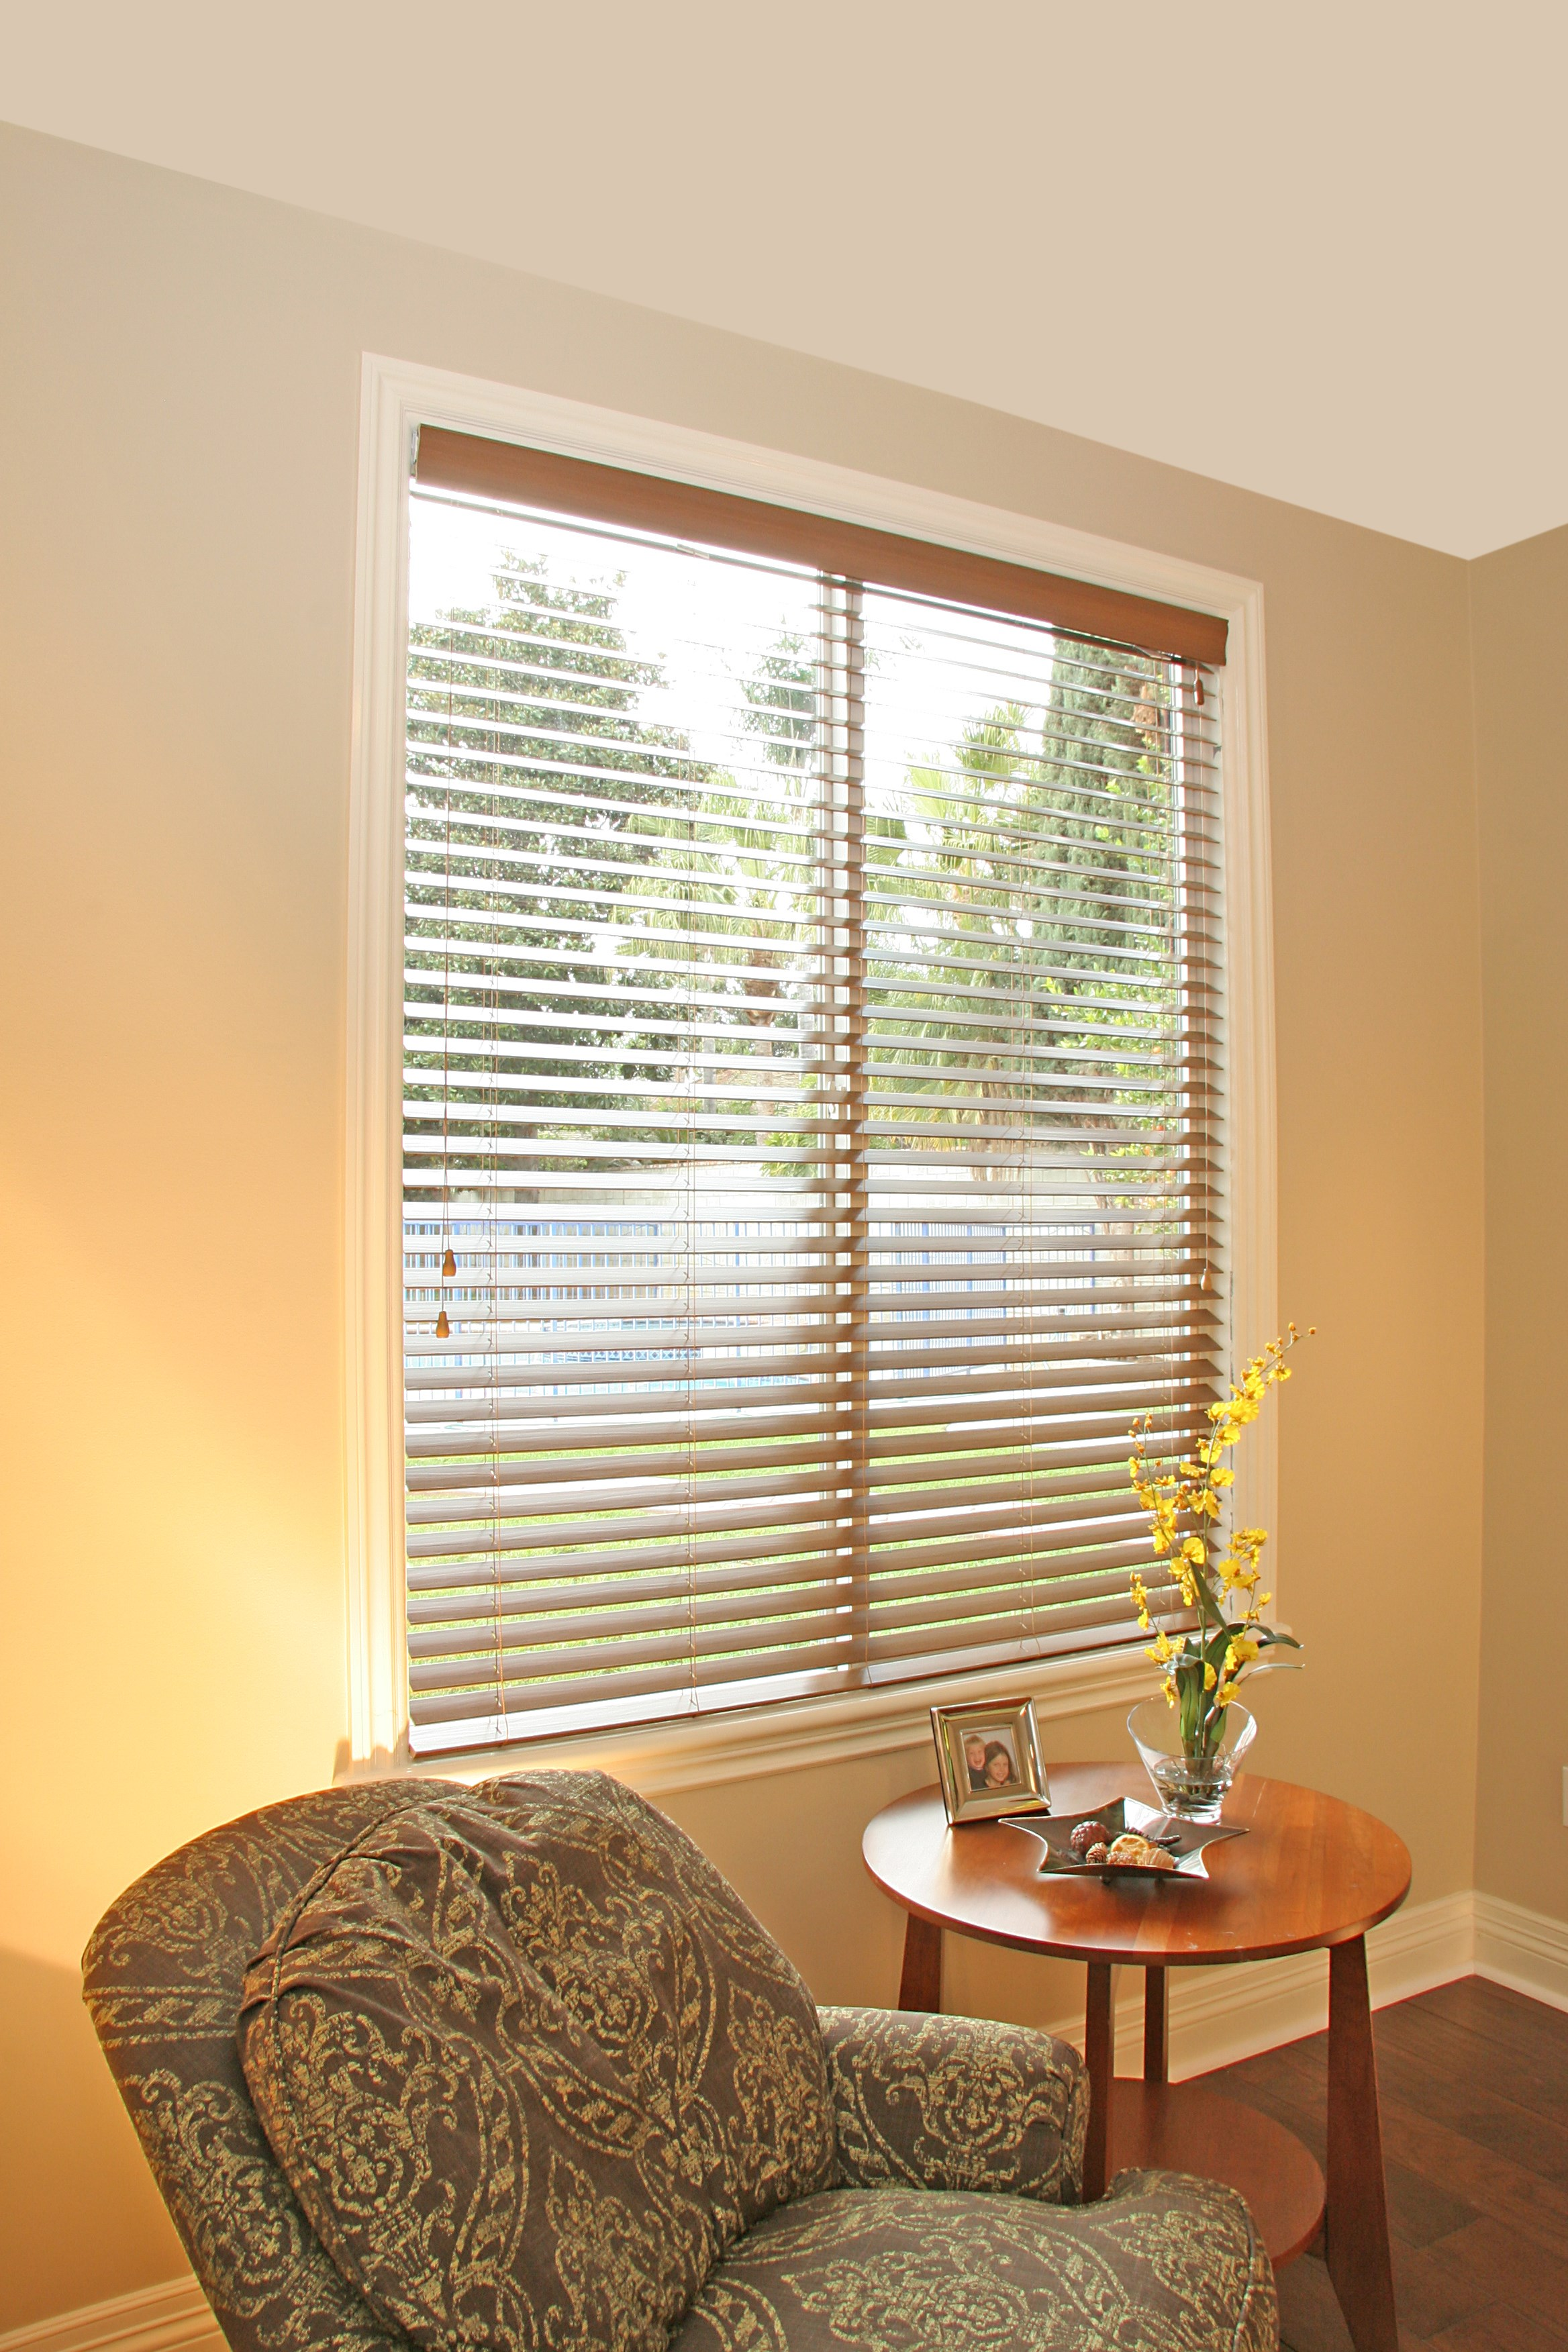 norman 110472 blinds_brwn_rw_126.JPG